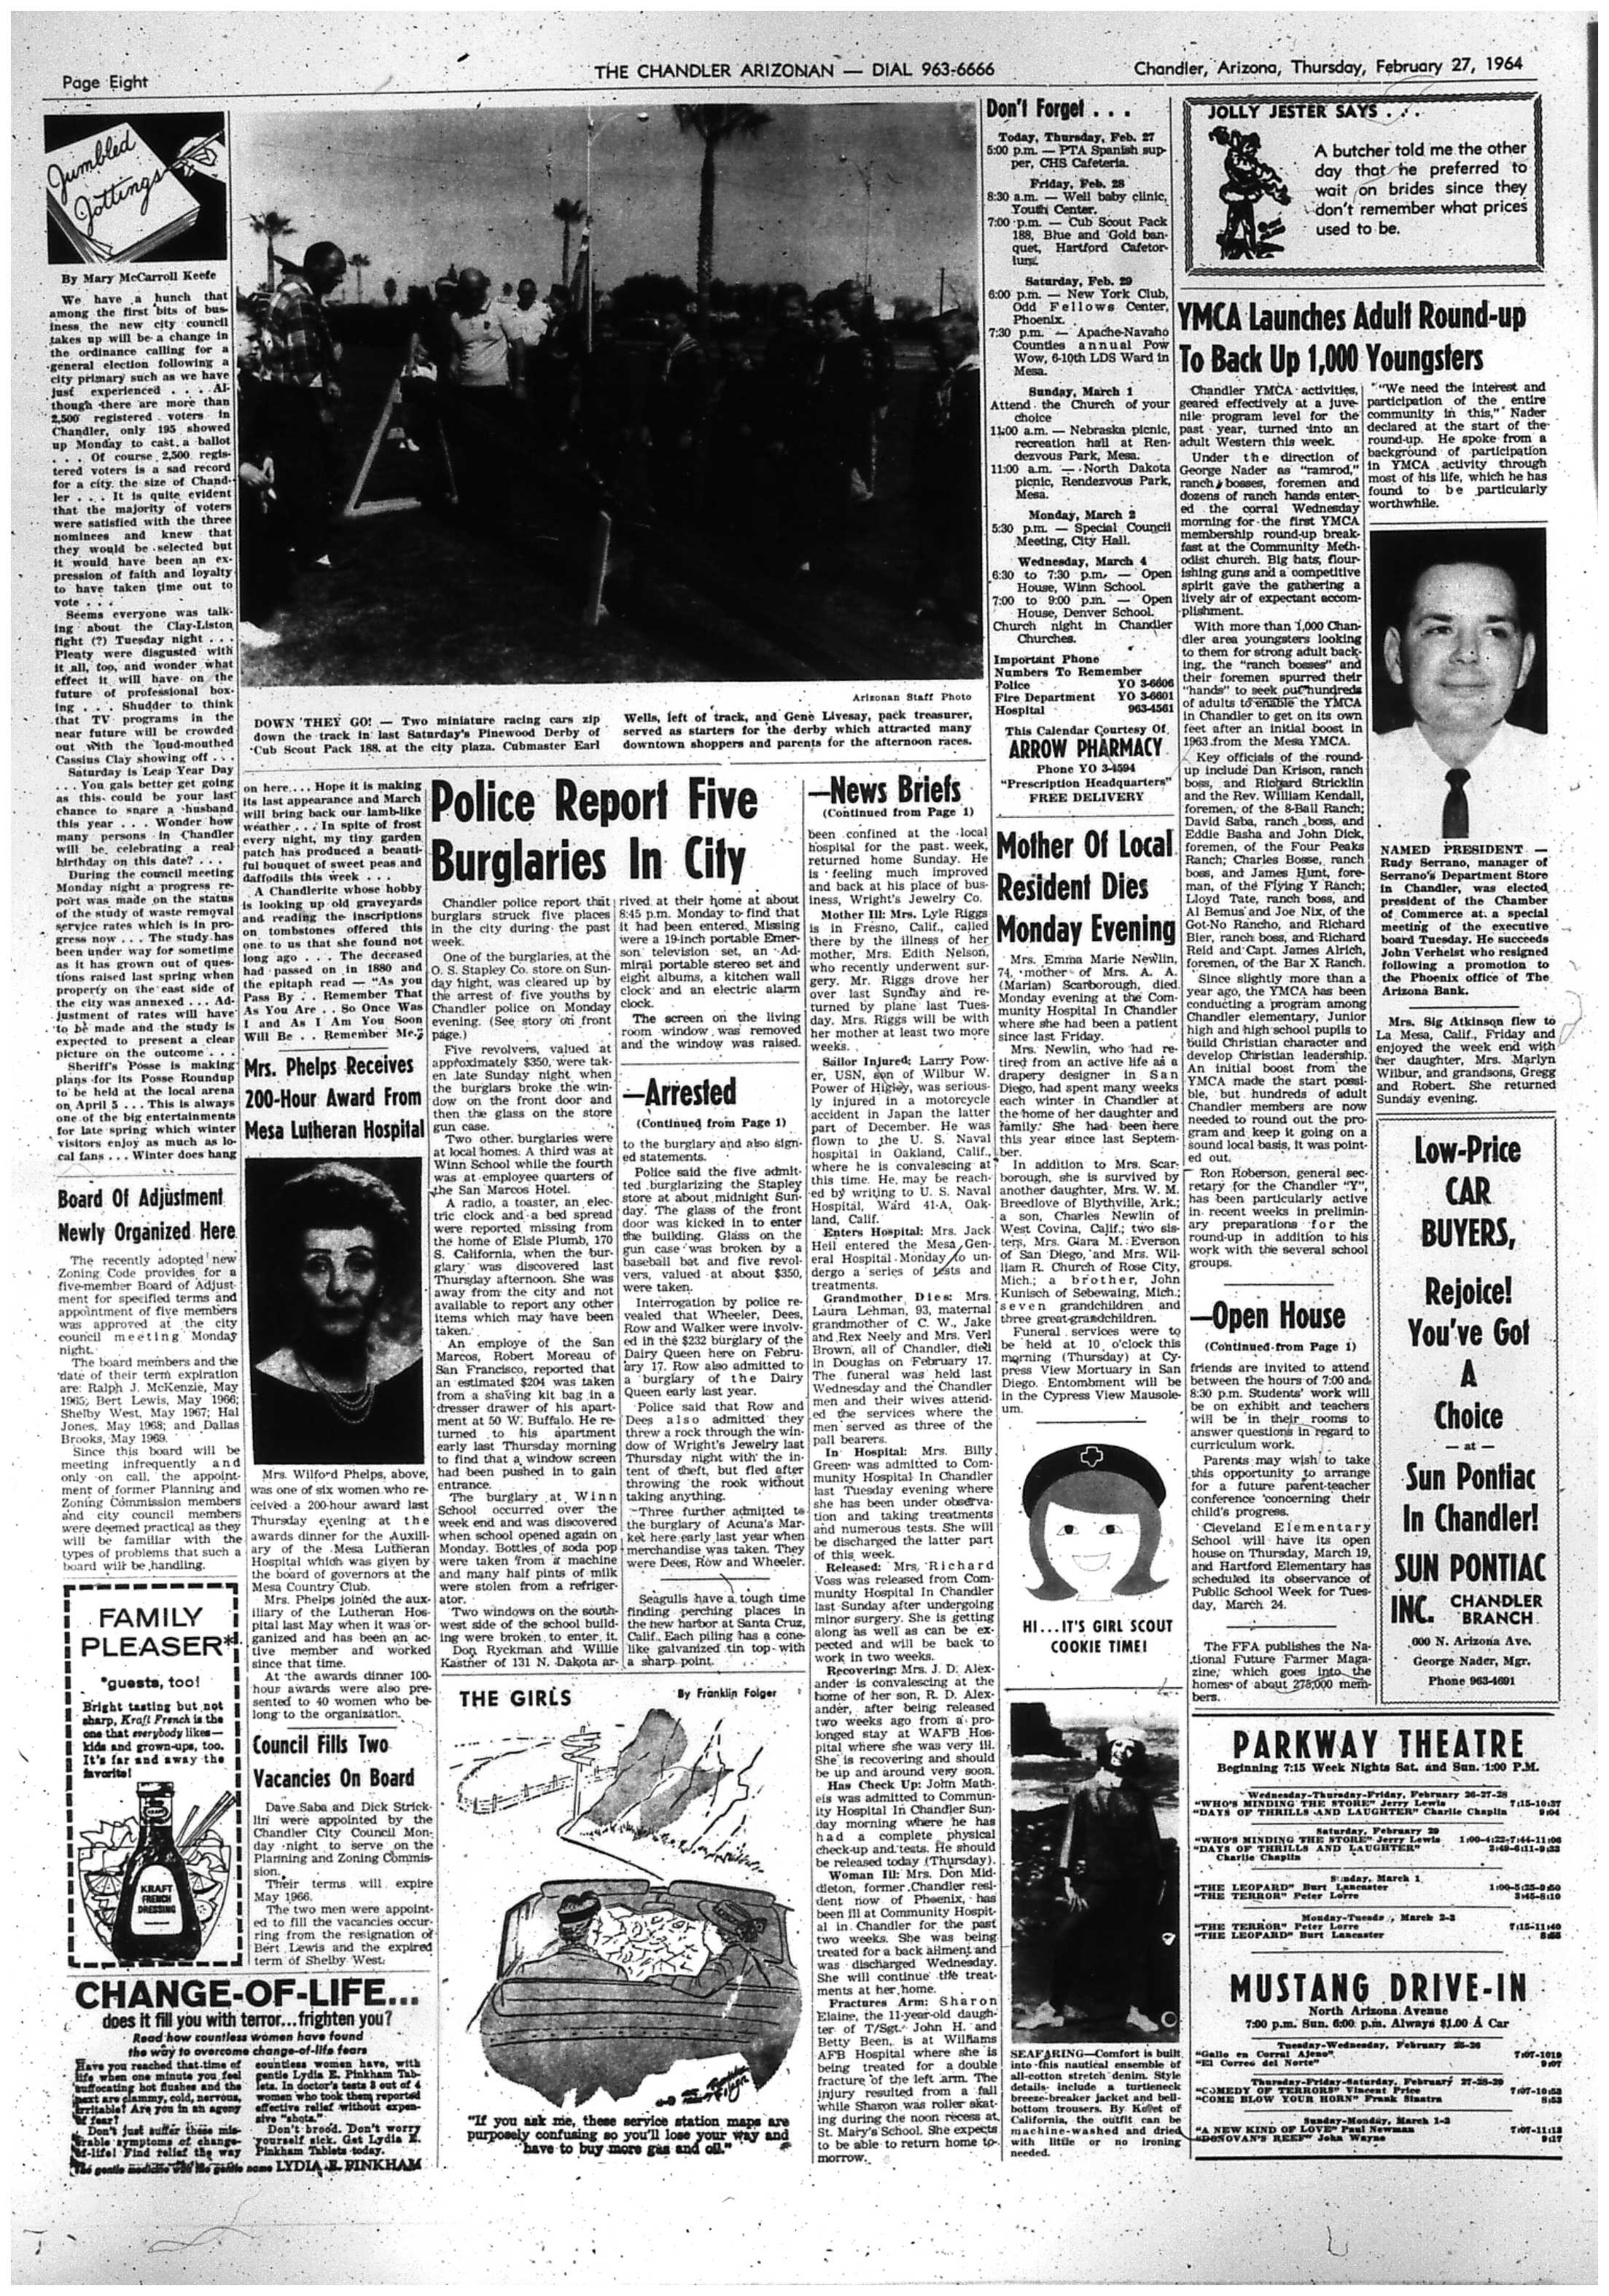 02-27-1964 - Page 8 .jpg